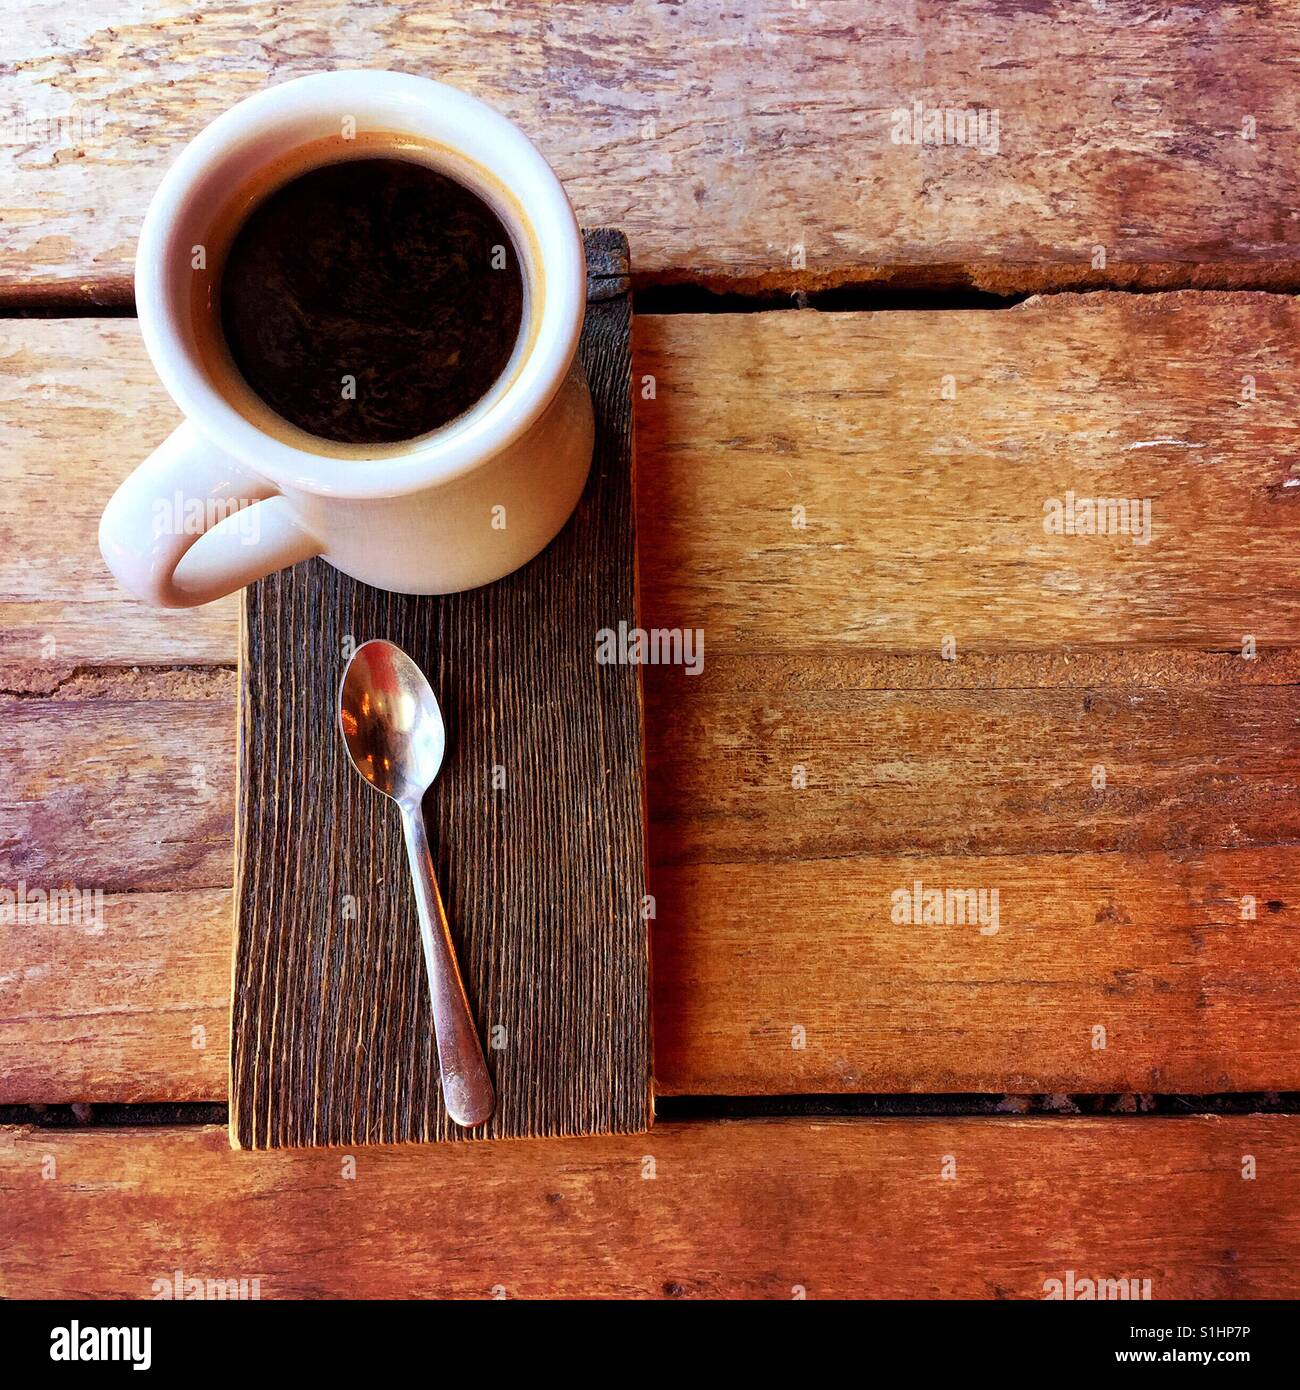 An overhead shot of a fresh Americano beverage and a spoon on a wood serving plate on a wooden table - Stock Image